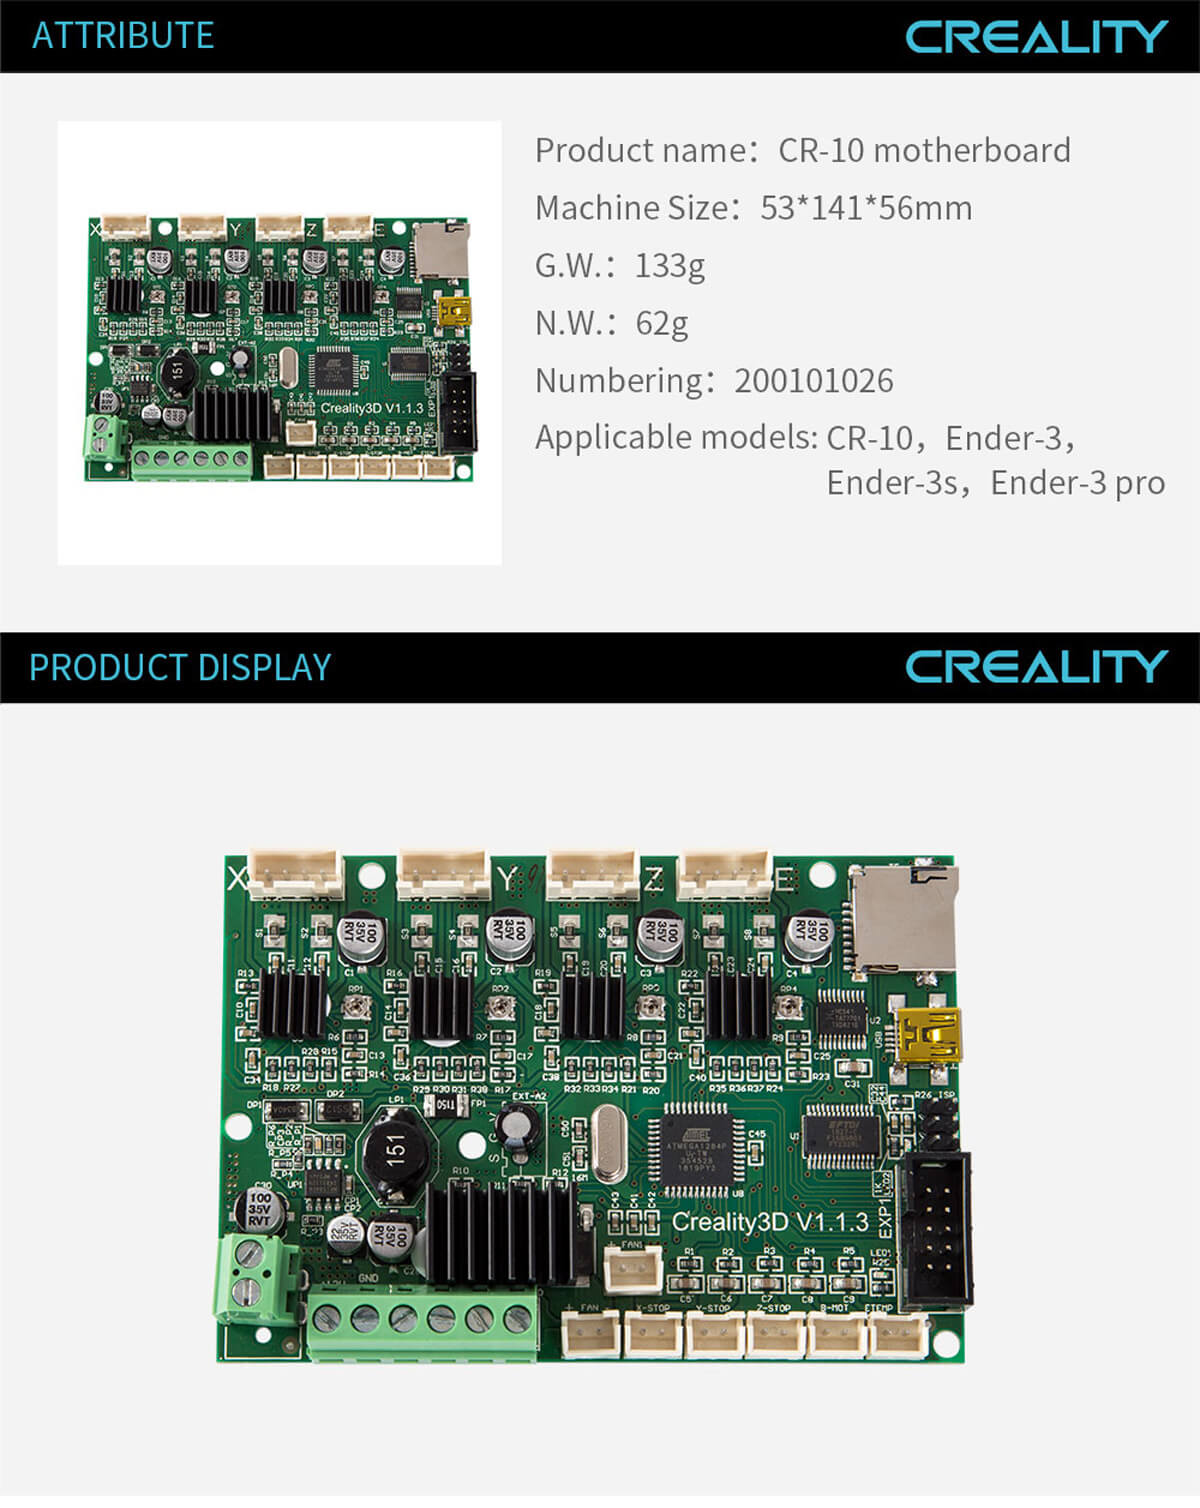 creality-3d-printer-CR-10-Motherboard-11